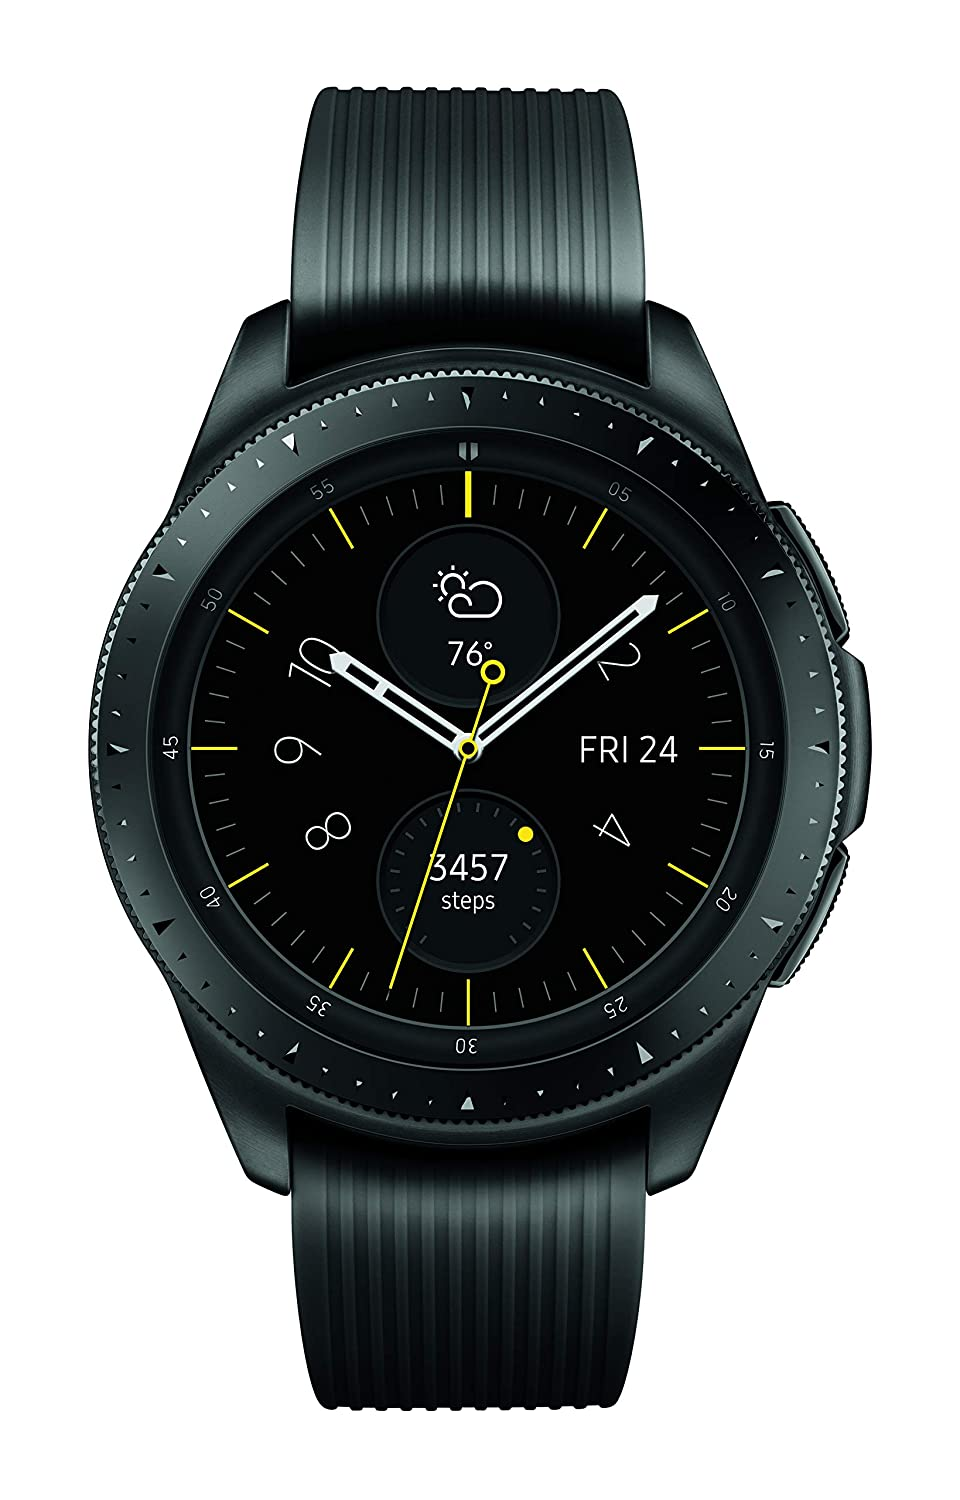 Samsung Galaxy Watch (42mm) Midnight Black (Bluetooth) SM-R810NZKAXAR – US Version with Warranty